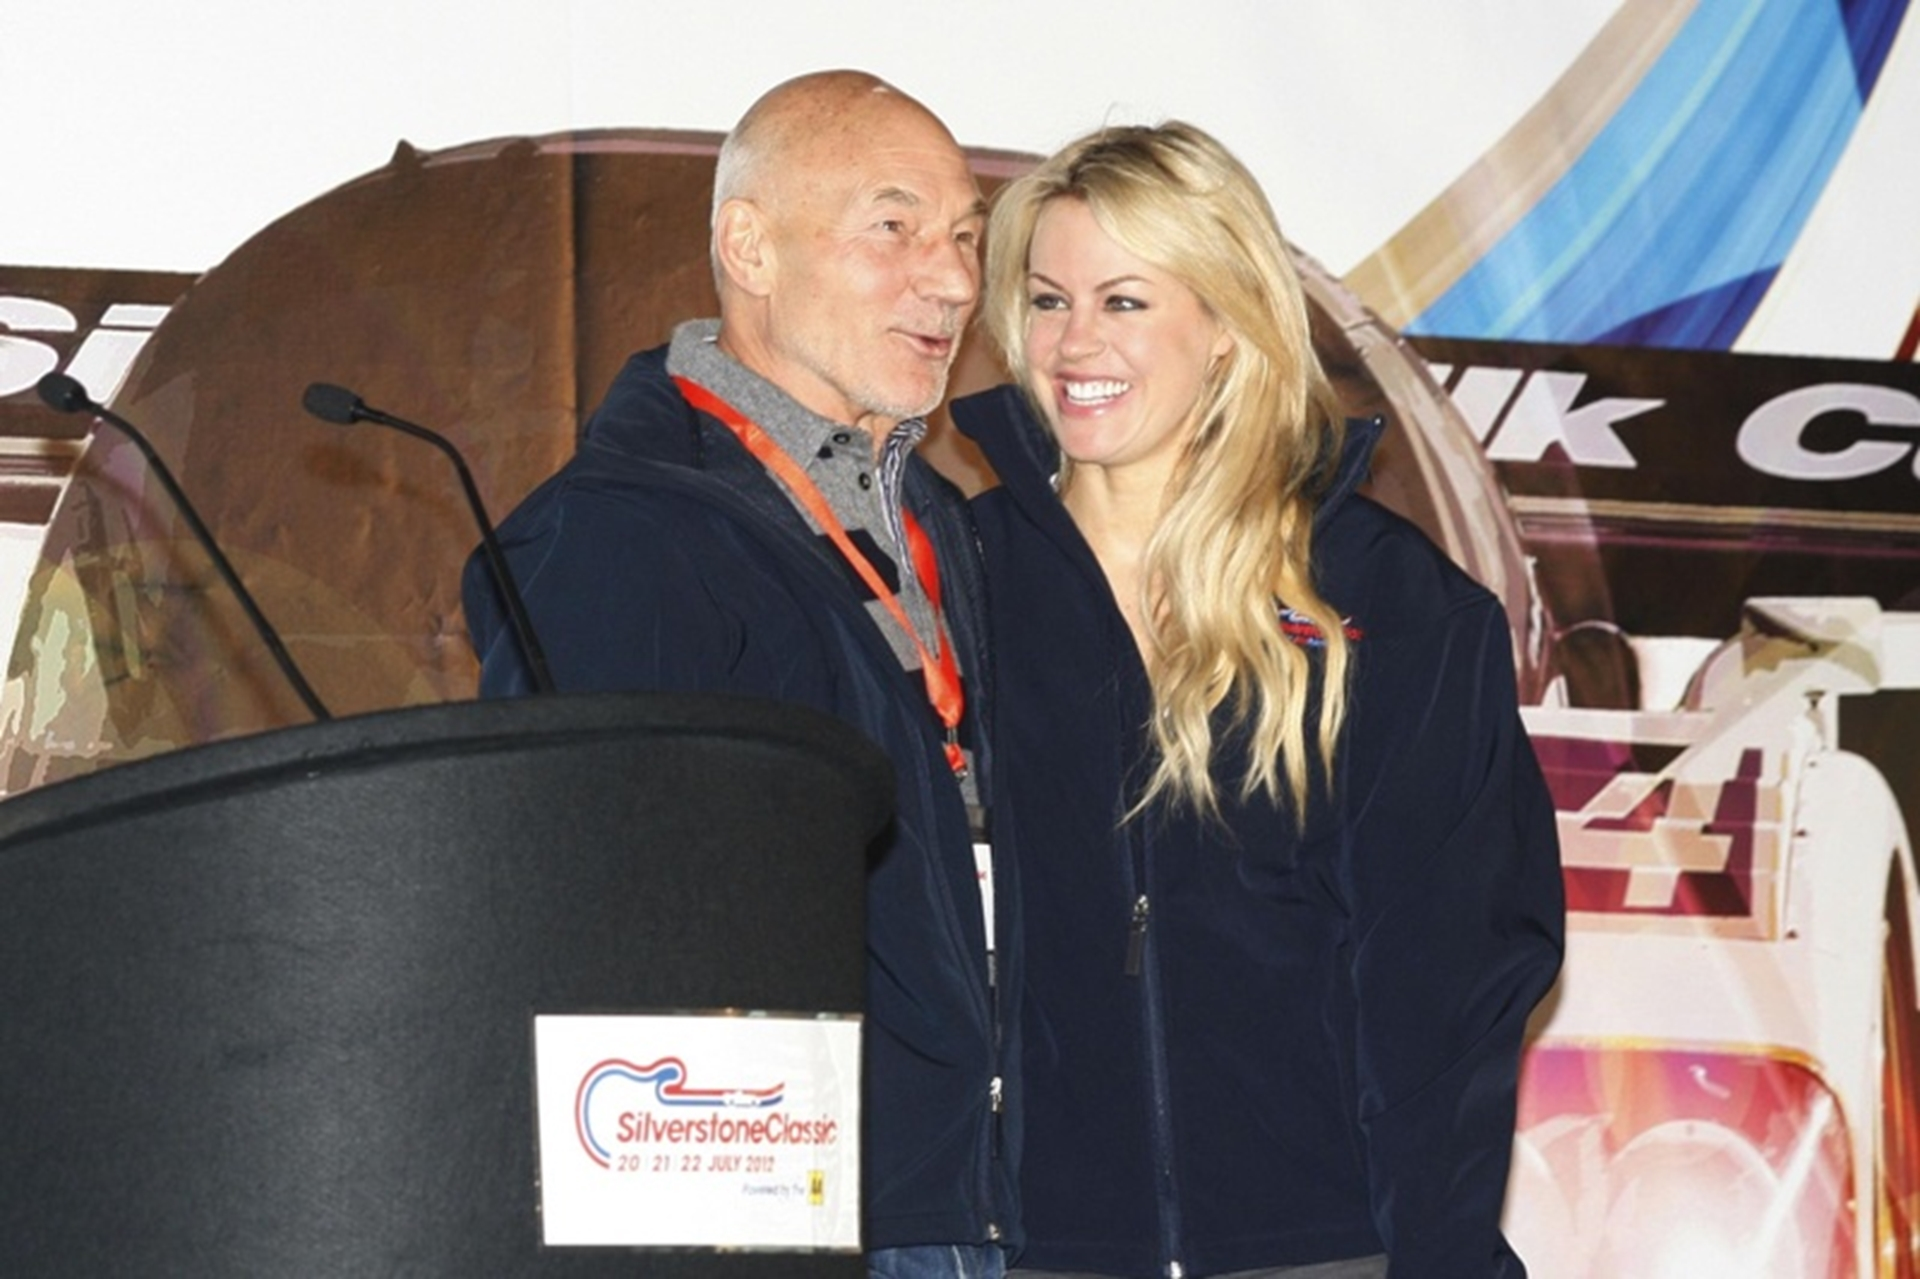 Sir Patrick Stewart and Chemmy Alcott